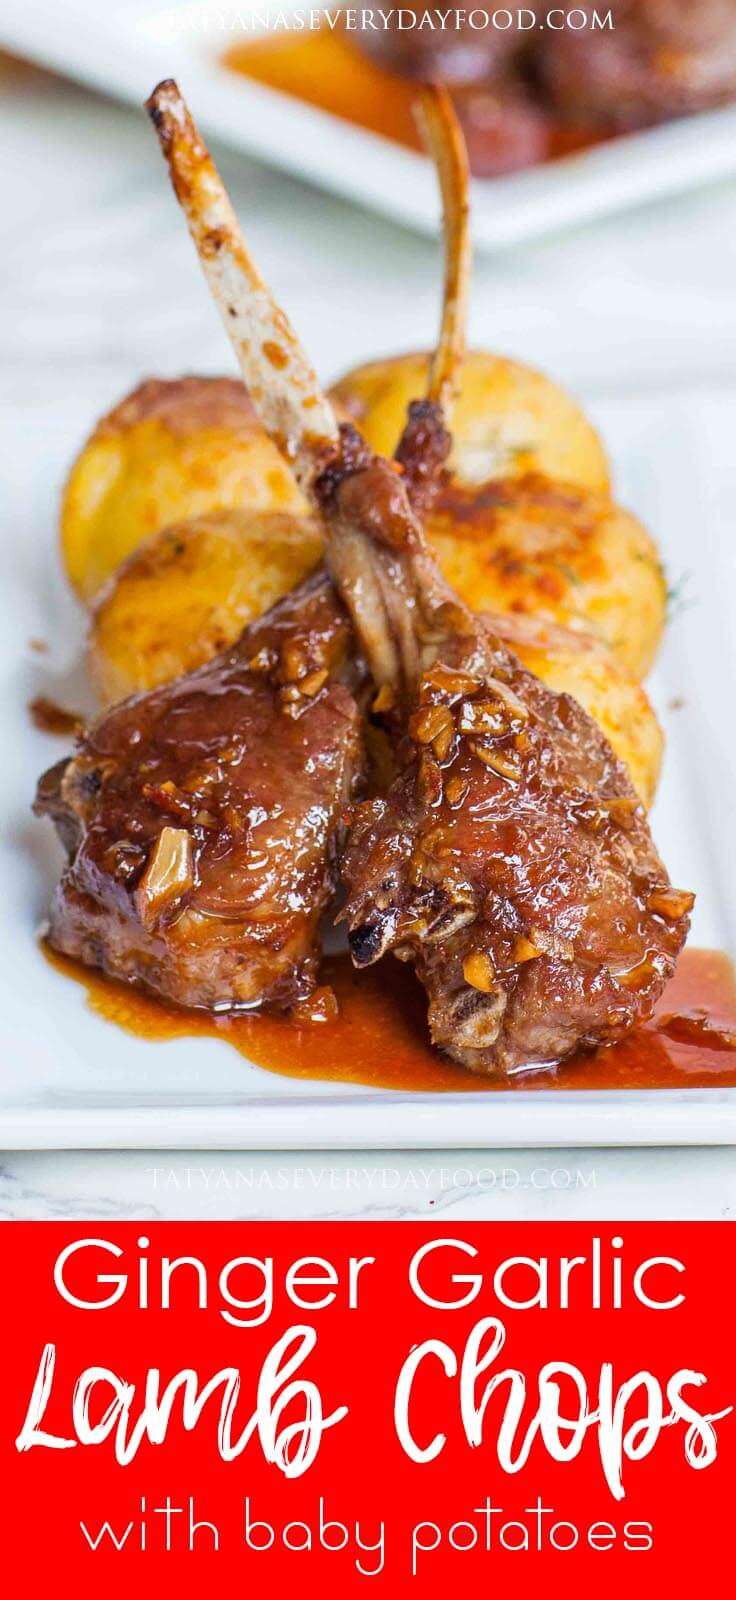 Ginger Garlic Lamb Chops video recipe